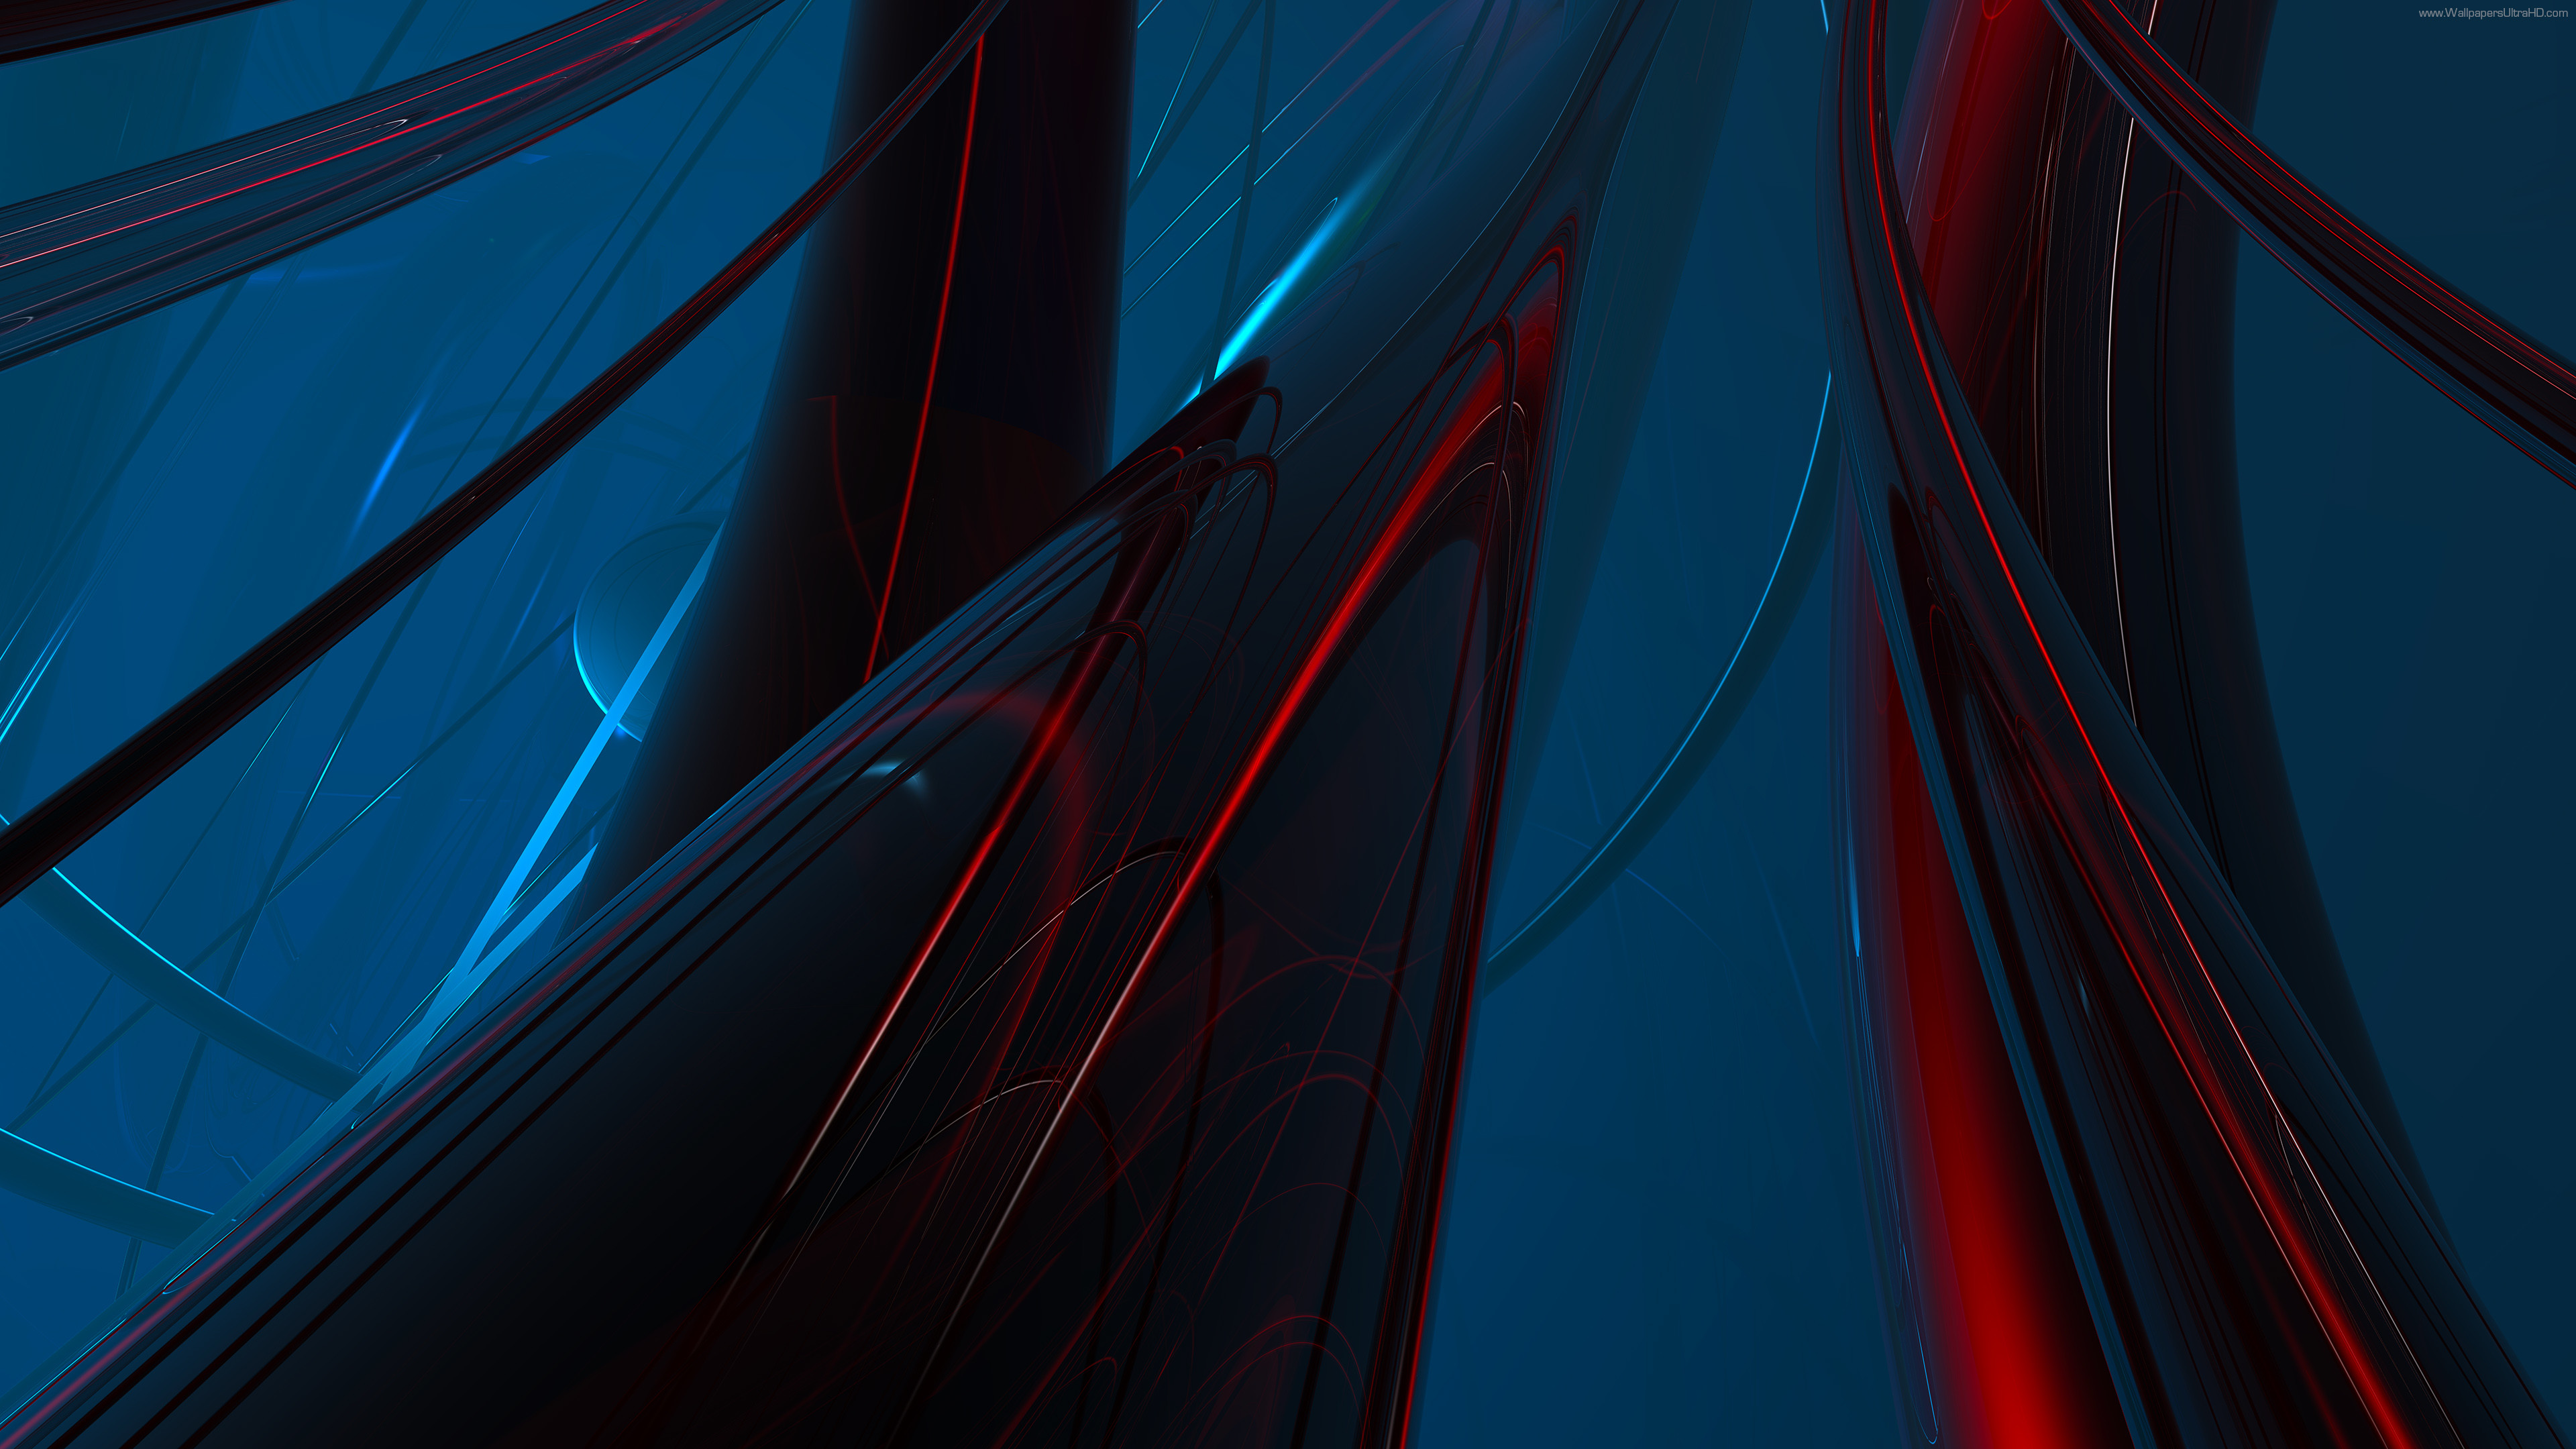 3840x2160 UHD wallpapers 4K Abstract red + blue, Abstract green + purple .